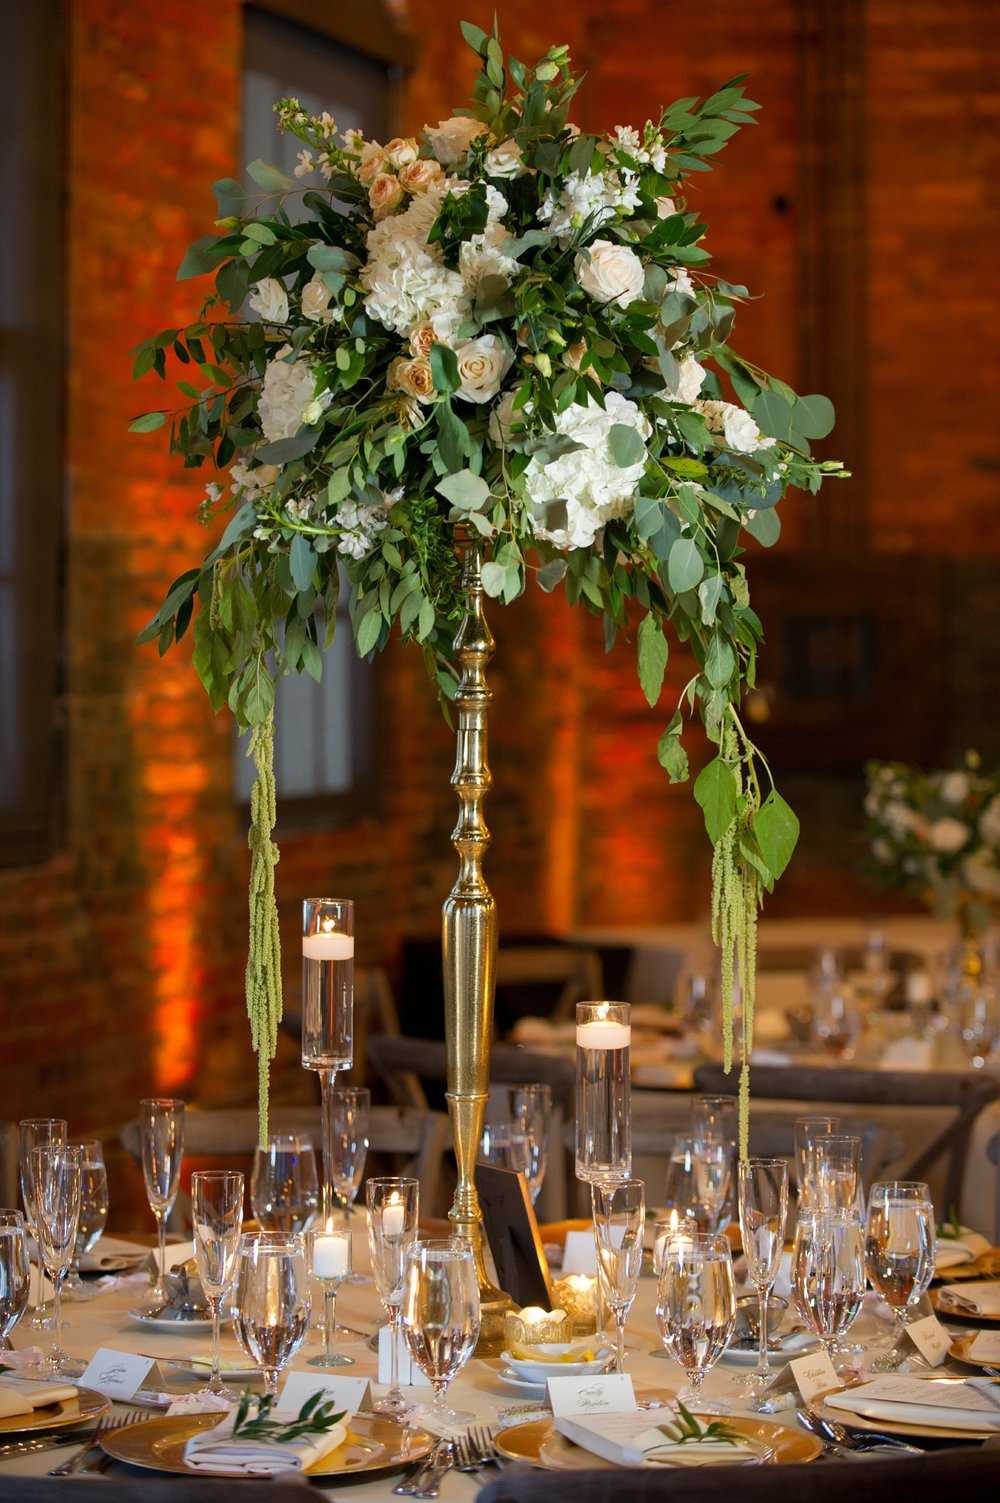 Arrangements of hanging amaranthus, ruscus, eucalyptus, hydrangea, stock, and roses towered over tables on opulent gold pillars.